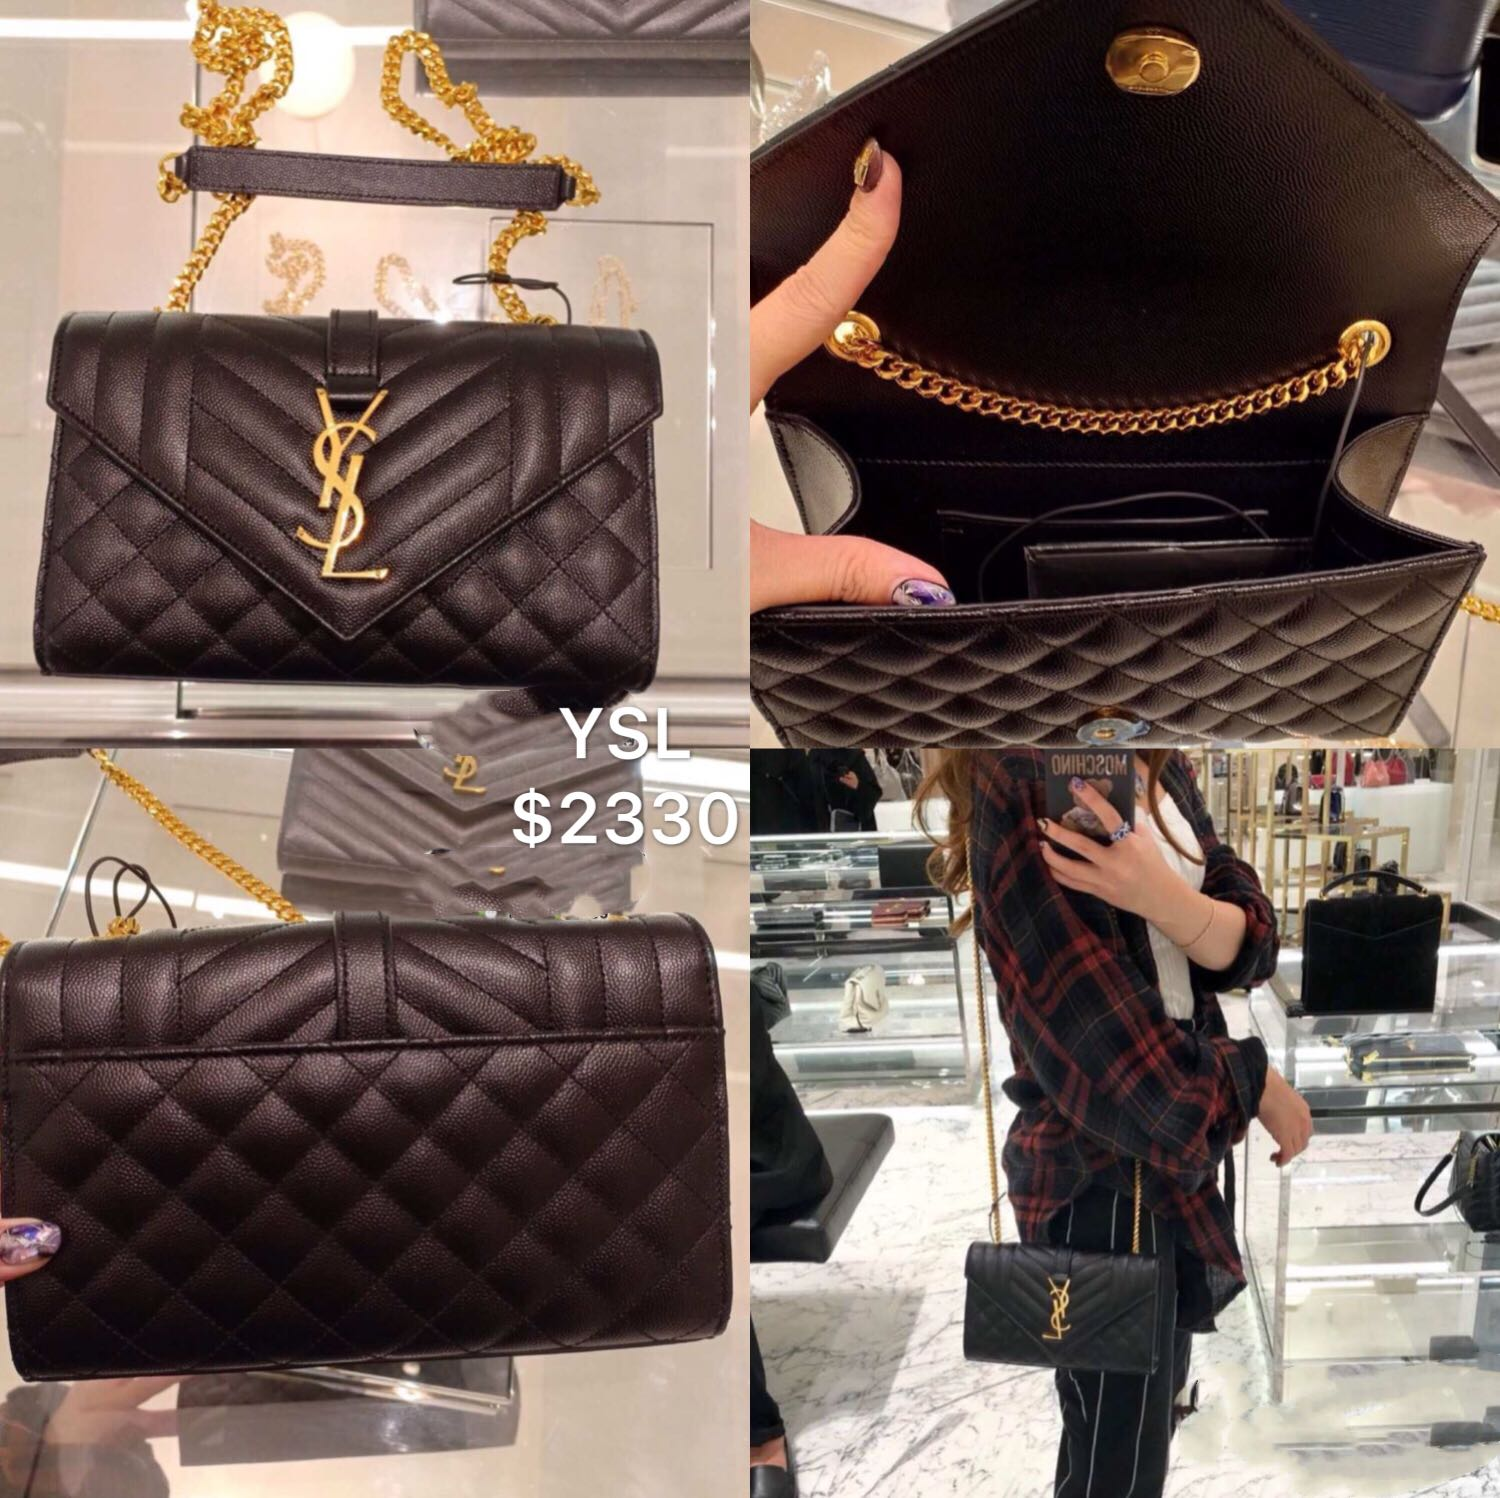 c7301a40297f Ysl envelope, Luxury, Bags & Wallets, Handbags on Carousell